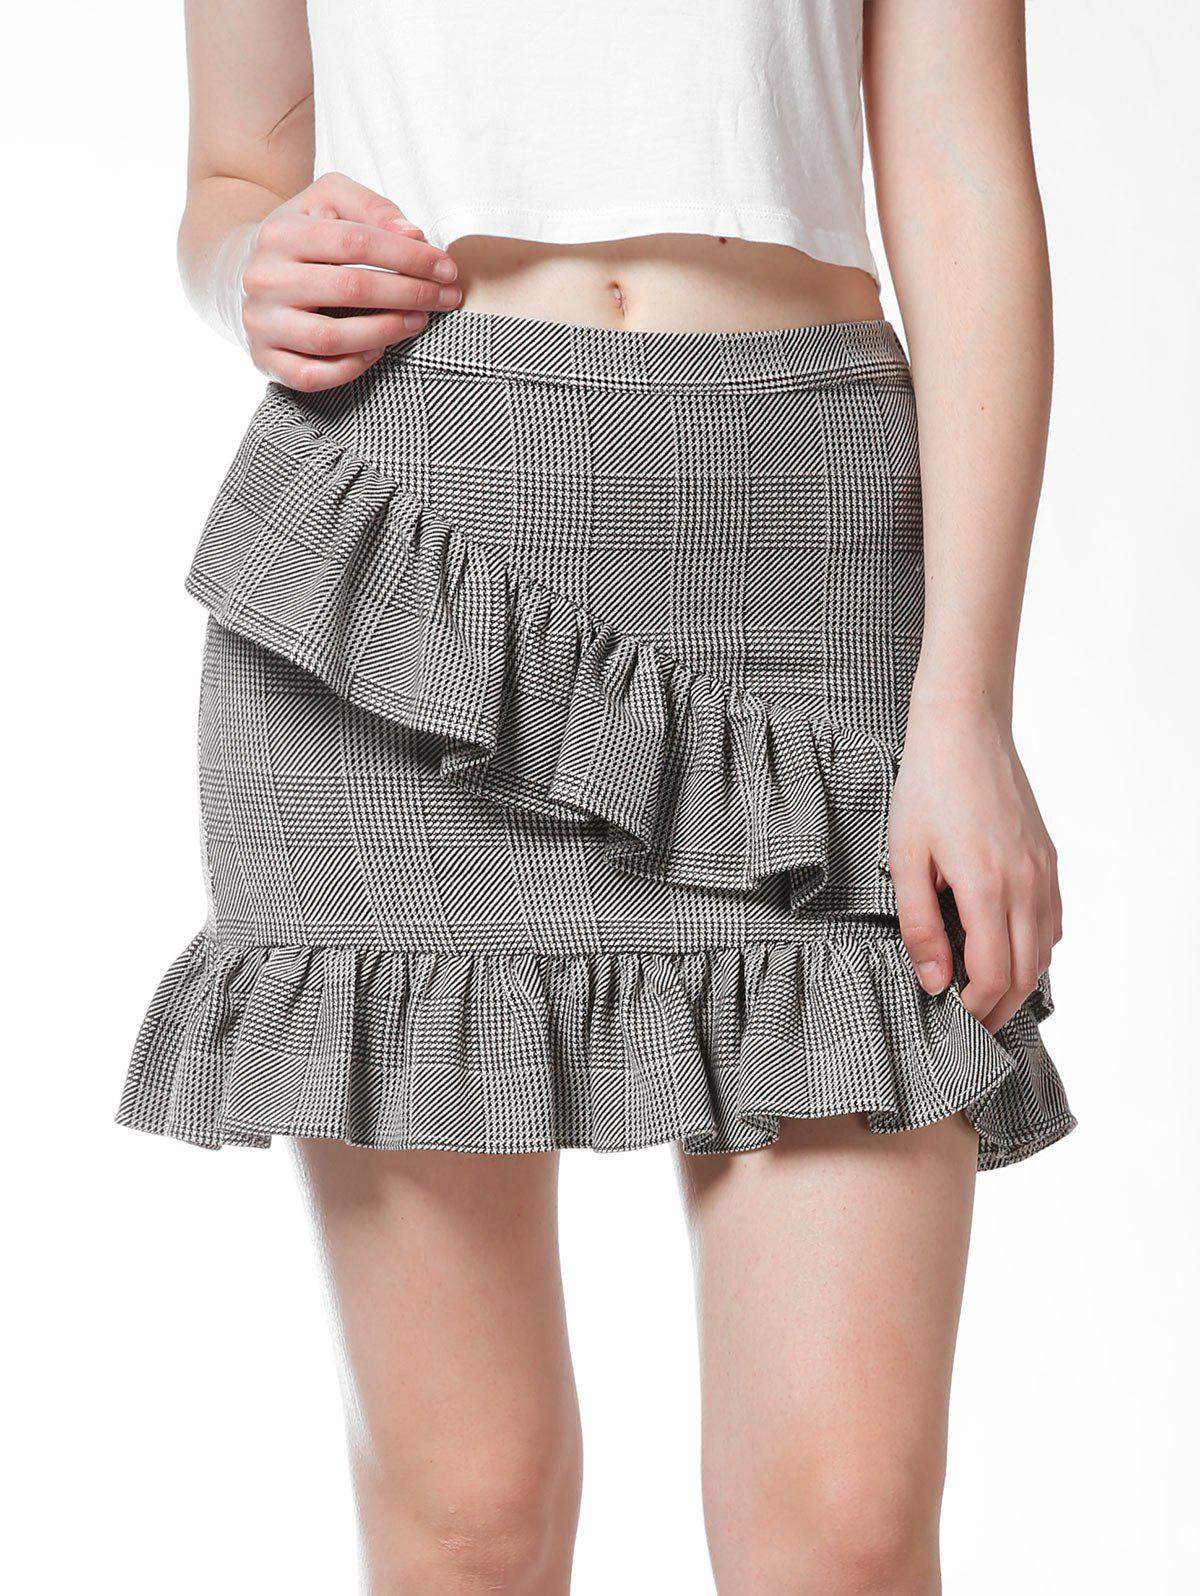 FRENCH BAZAAR Plaid Ruffle Mini Bodycon Skirt - LIGHT GREY S